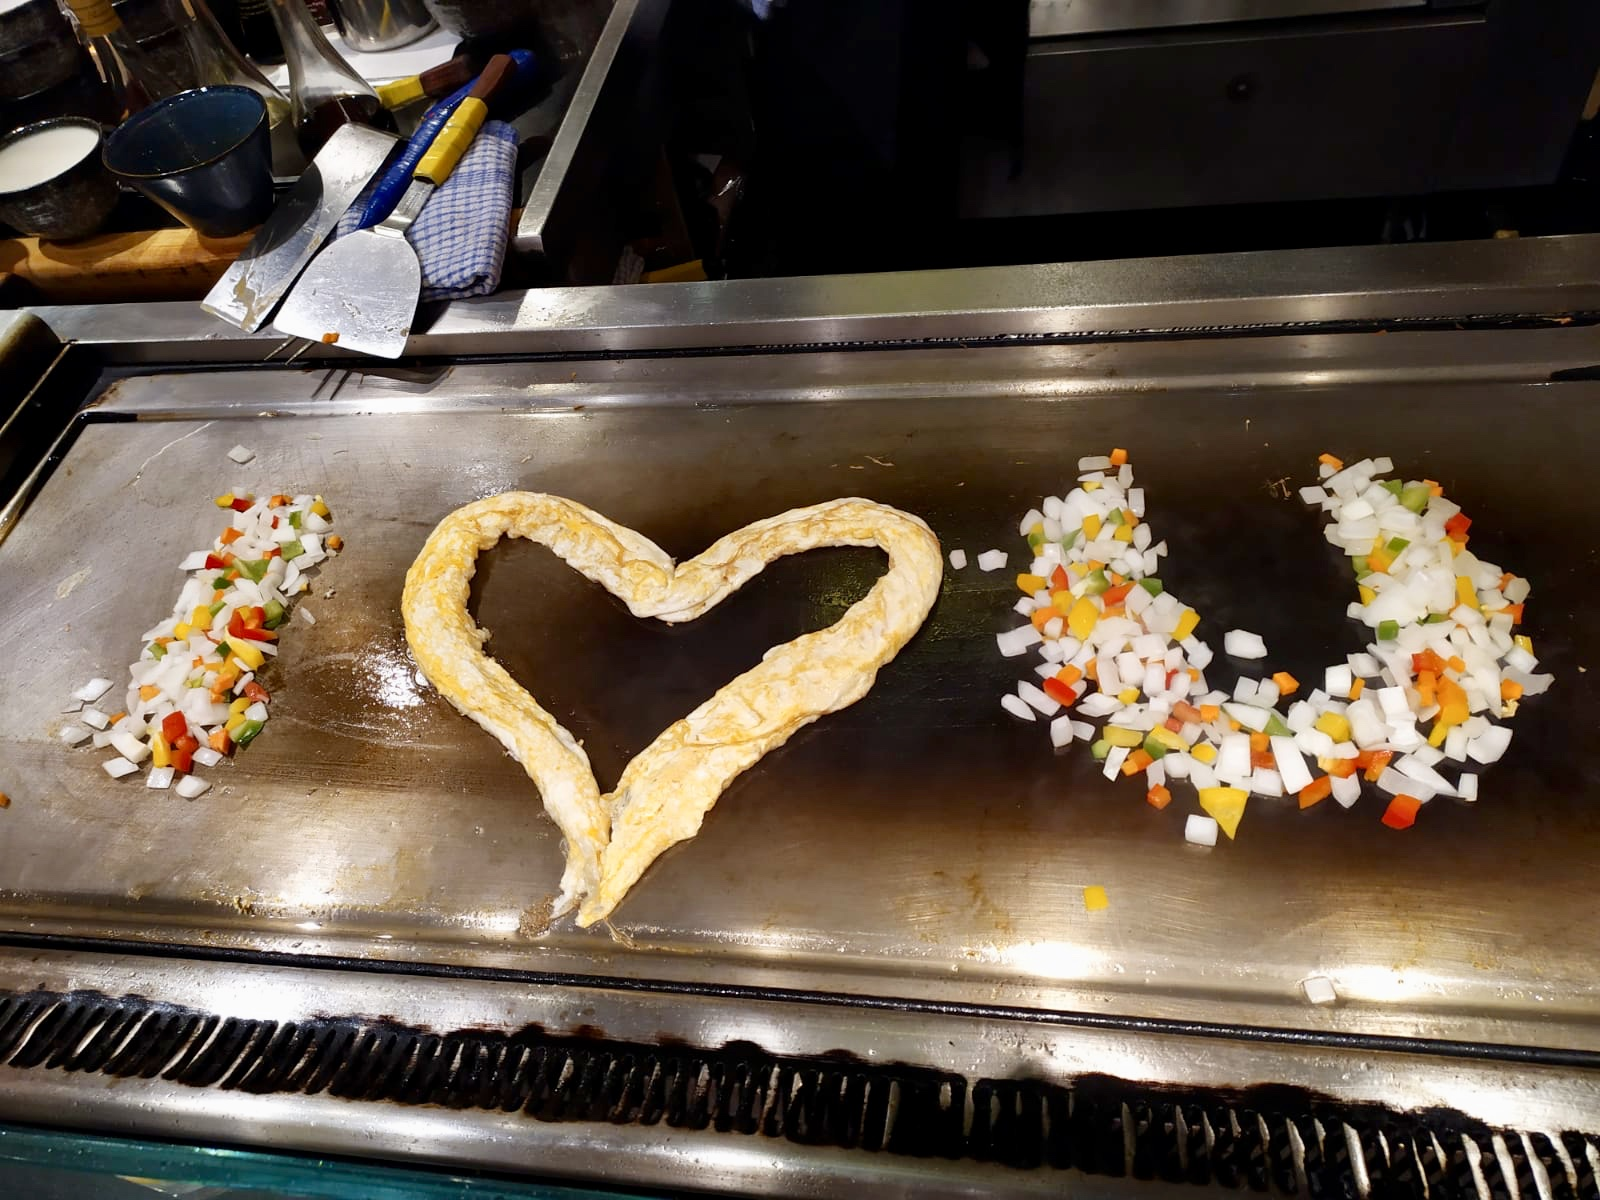 I heart u made out of food on a hot plate